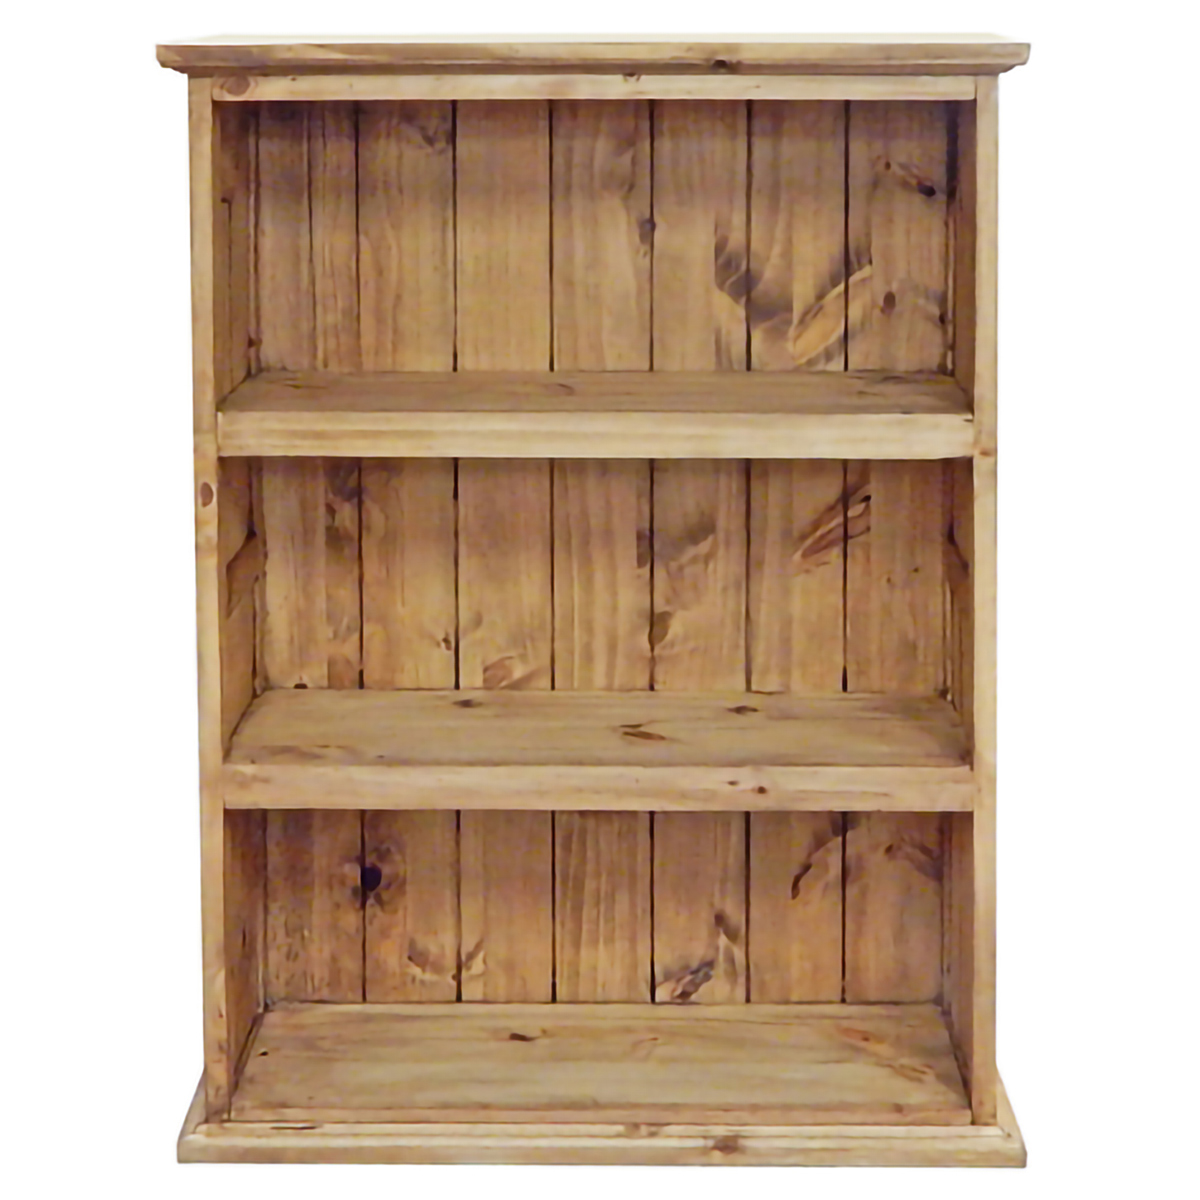 Medium Slatted Pine Bookcase